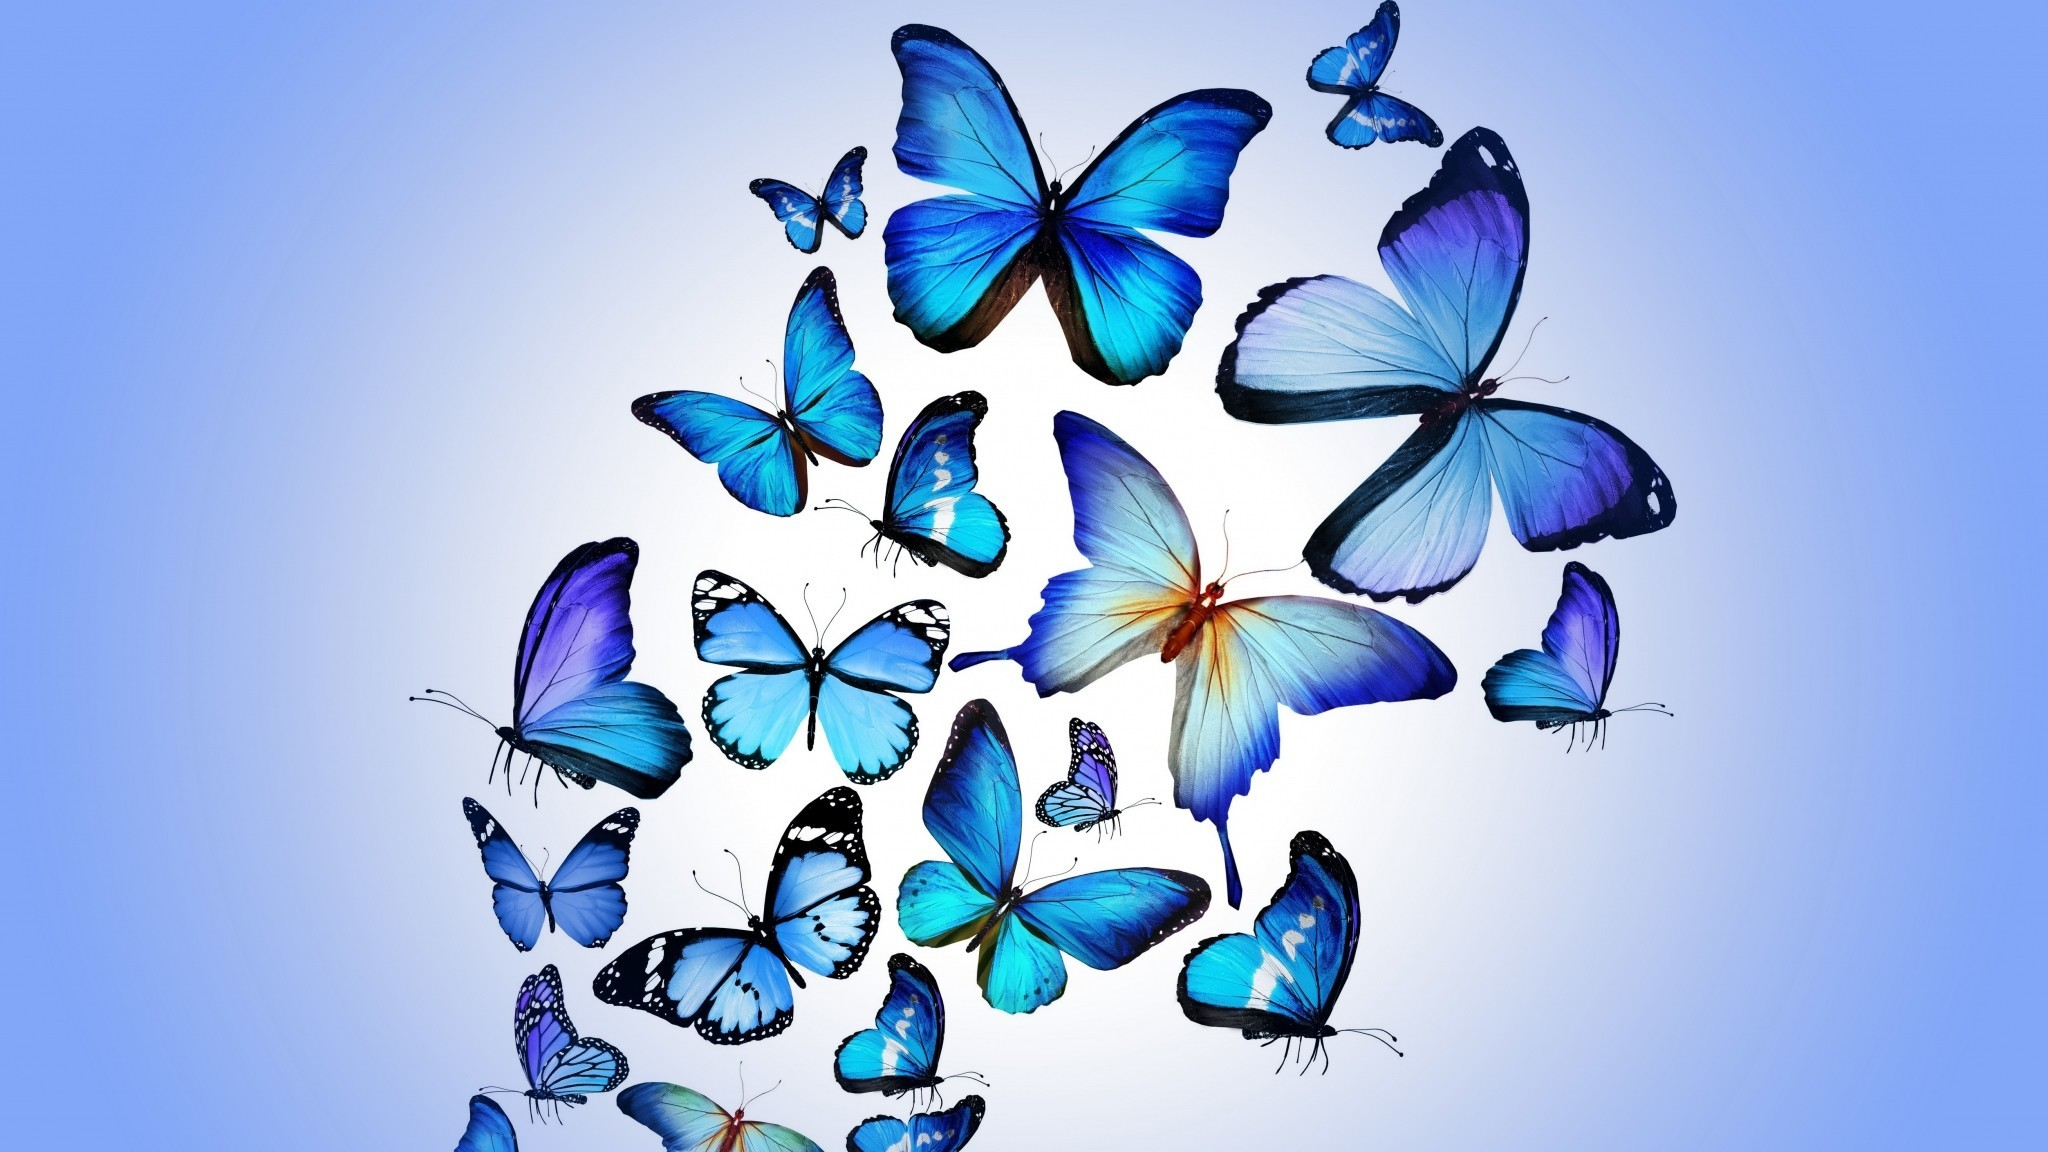 2048x1152  Download Free High Quality Butterfly Wallpaper The Quotes Land  1920×1200 Butterfly Picture | Adorable Wallpapers | Desktop | Pinterest ...